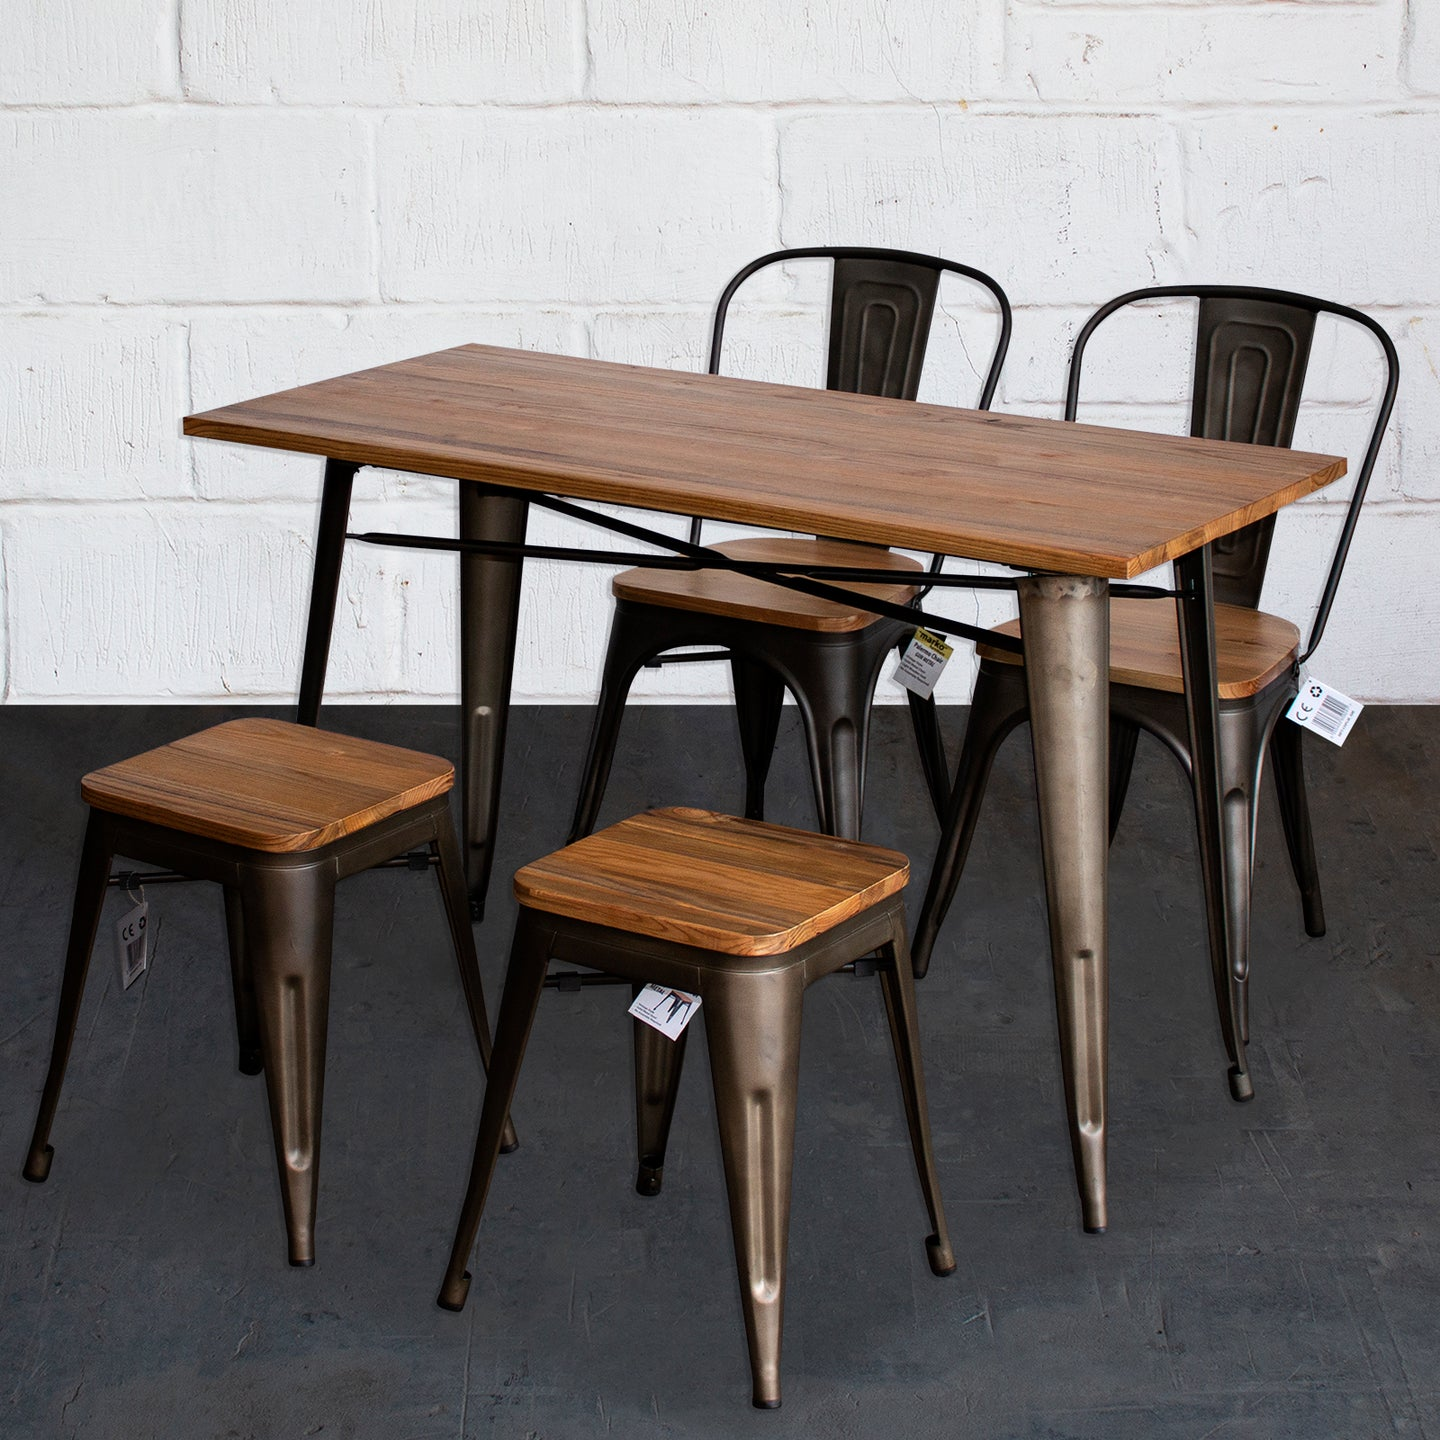 5PC Prato Table, 2 Palermo Chairs & 2 Rho Stools Set - Gun Metal Grey